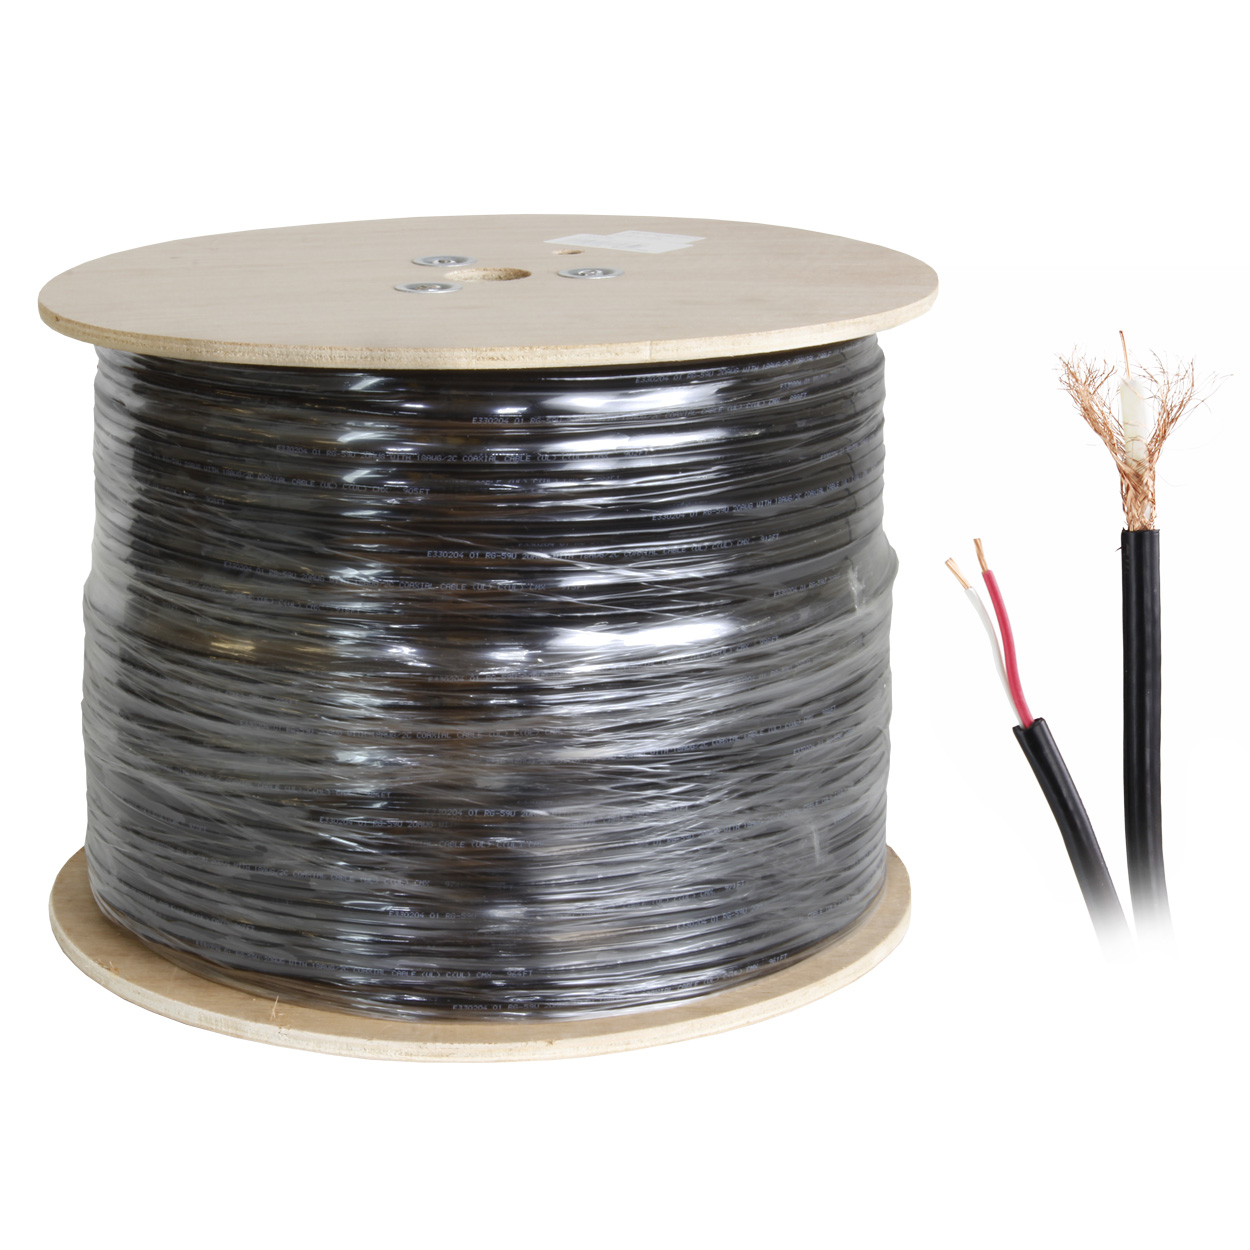 1000ft Siamese RG59 Braid Shield Video + Power Siamese Cable - Black (20AWG Bare Copper + 18AWG CCA)